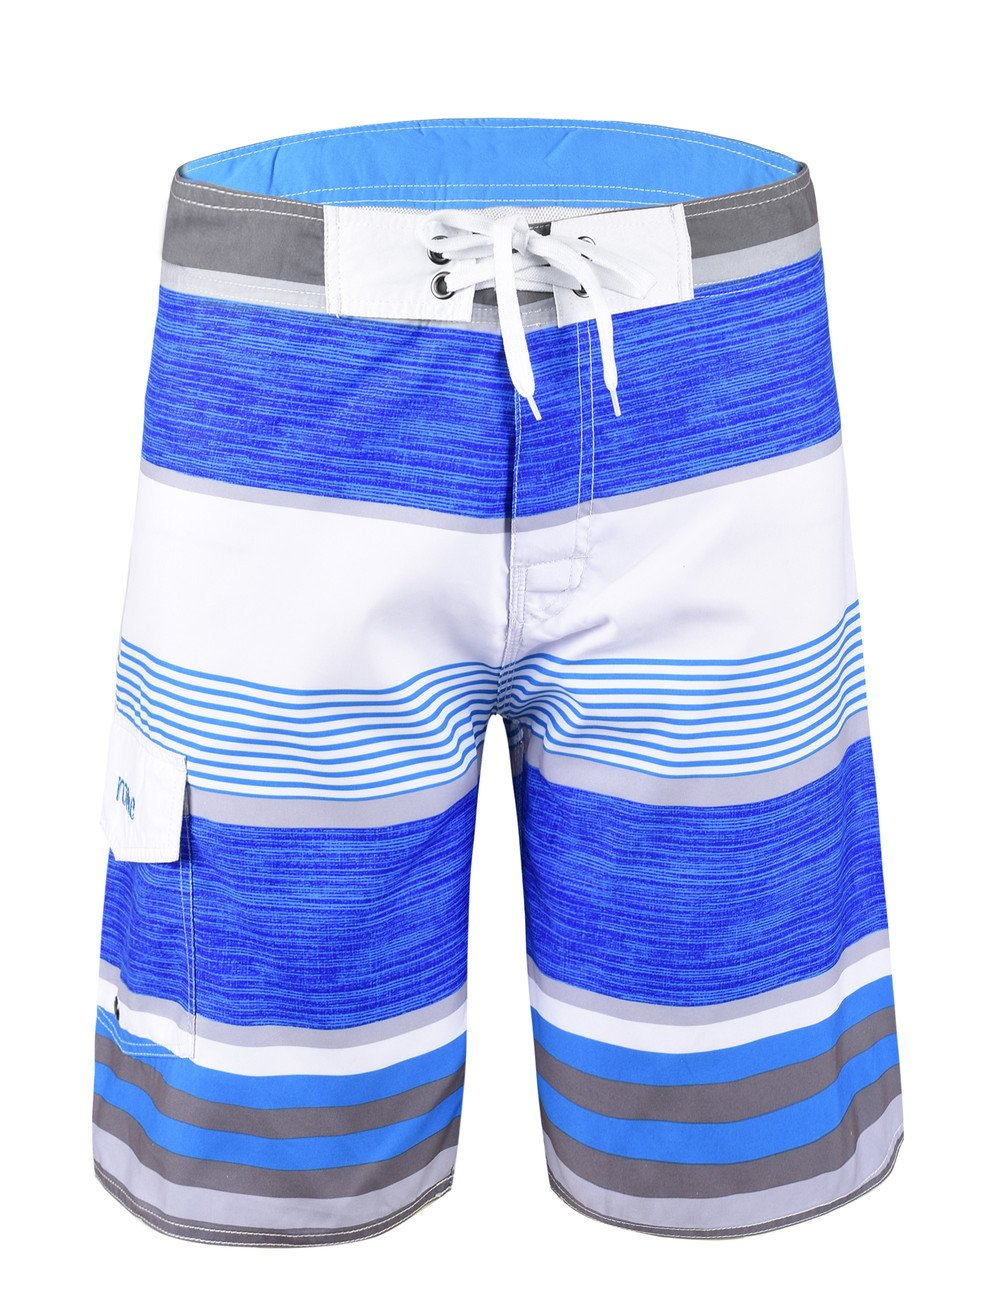 Nonwe Men's Stripe Straight Lightweight Beach Shorts Half Pants with Lining Blue Striped with White 32